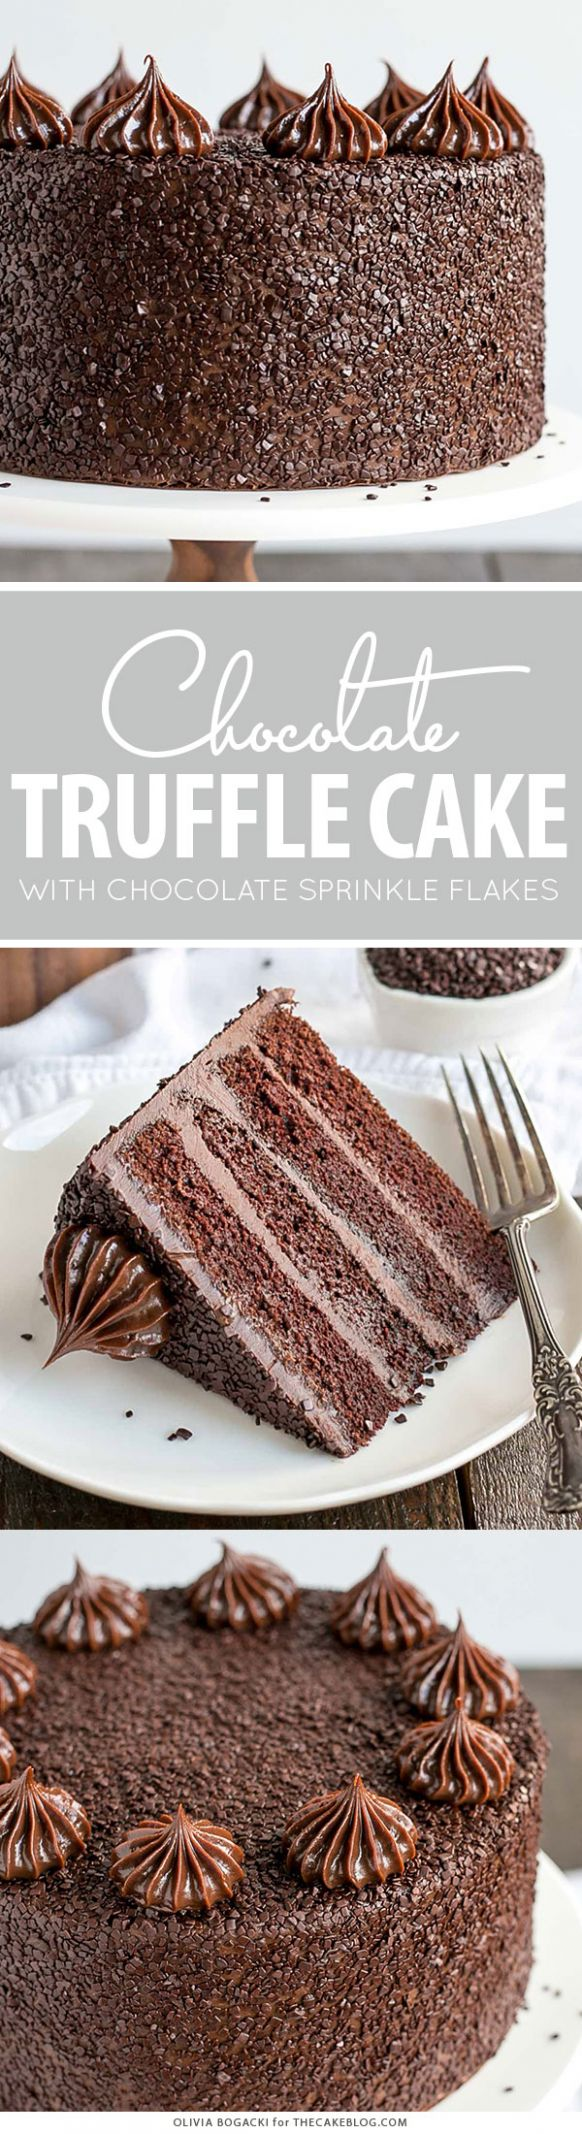 Chocolate Truffle Cake | The Cake Blog - Recipe Chocolate Truffle Cake